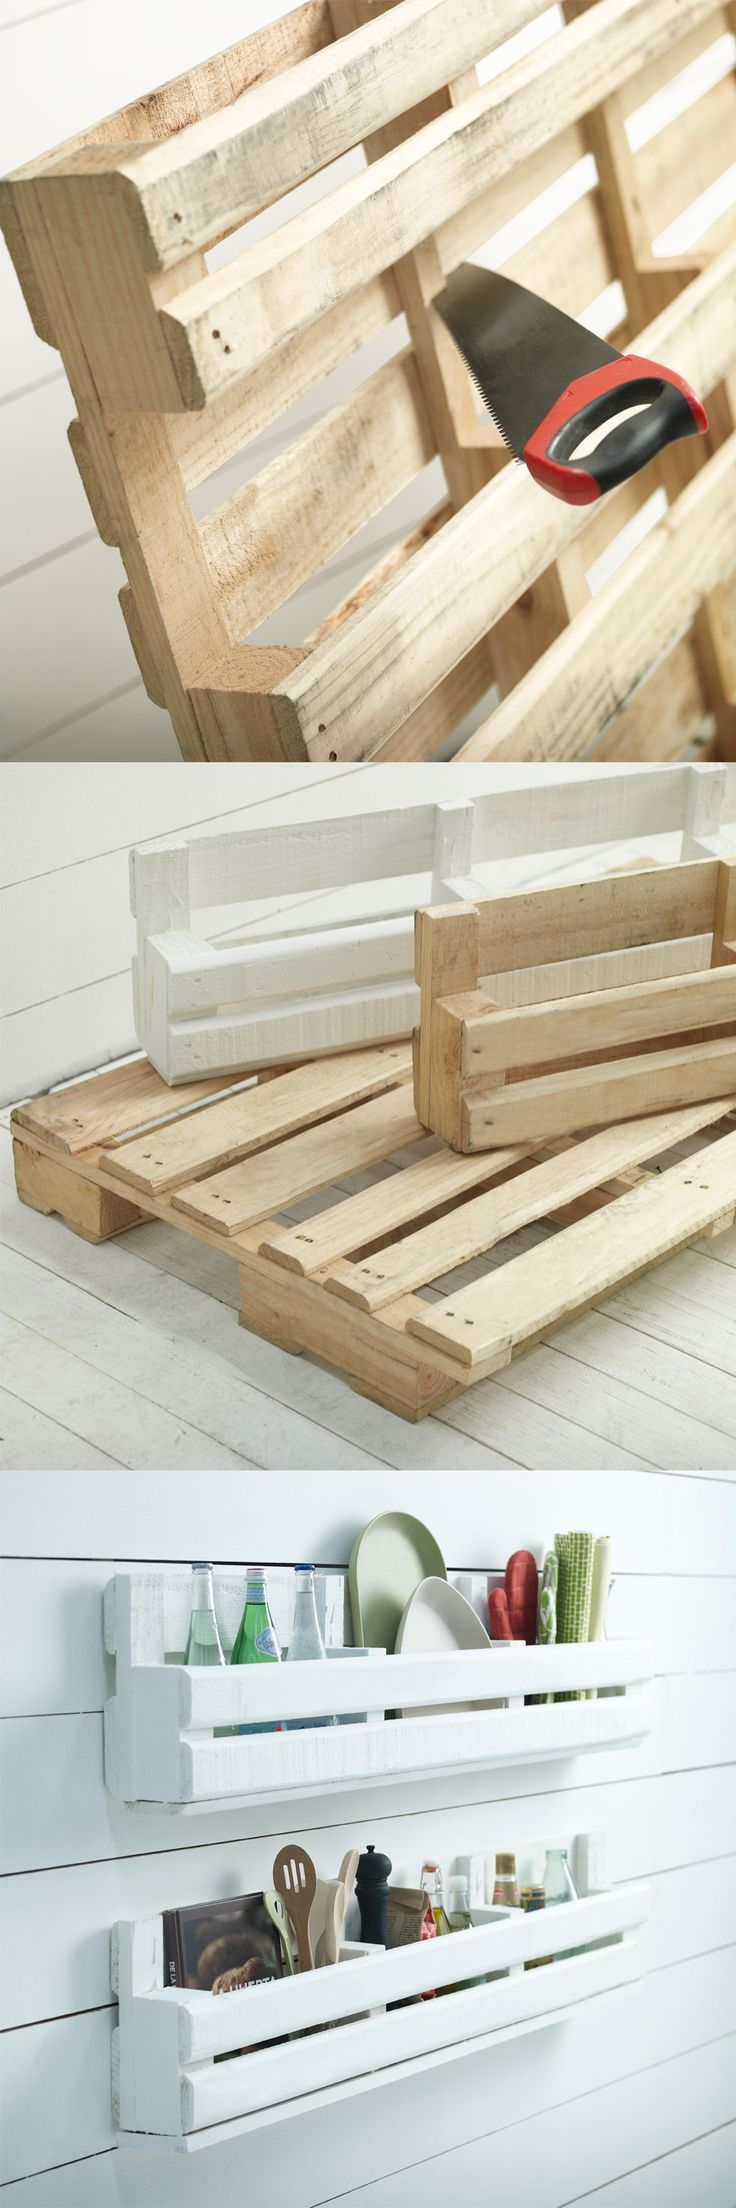 Parola d'ordine: pallet! eco friendly, eleganti e… low cost ...